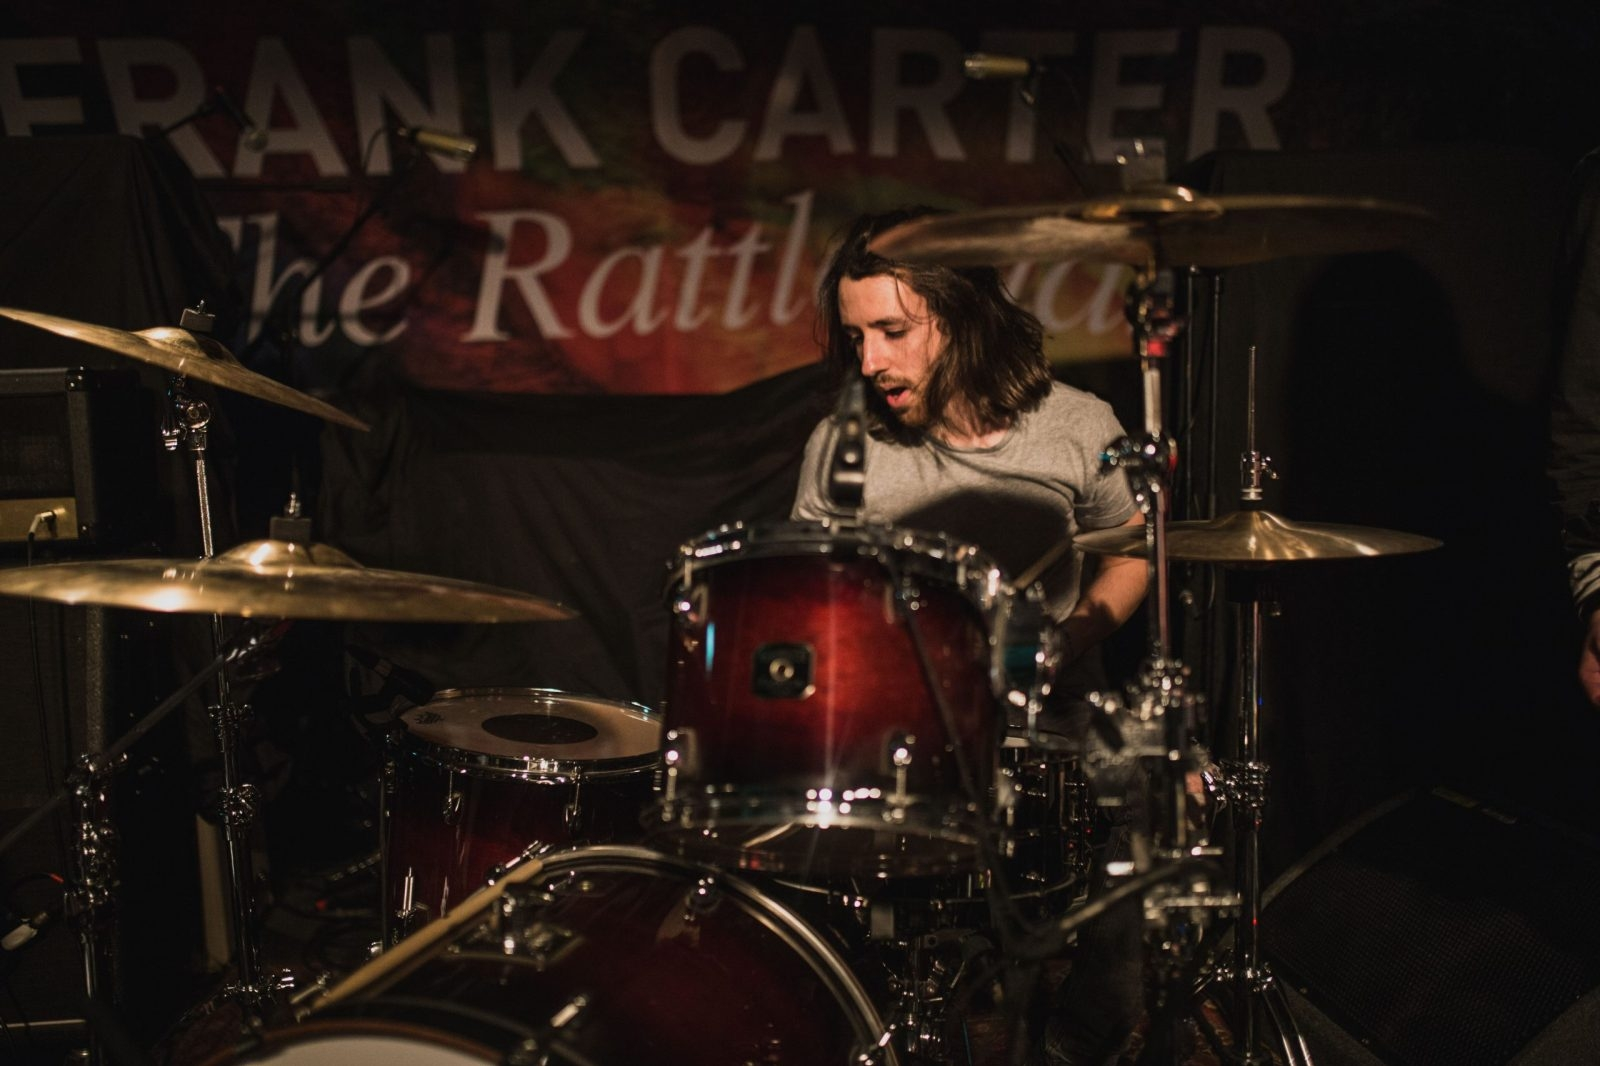 Frank Carter & The Rattlesnakes @ Oh Yeah Music Centre 25